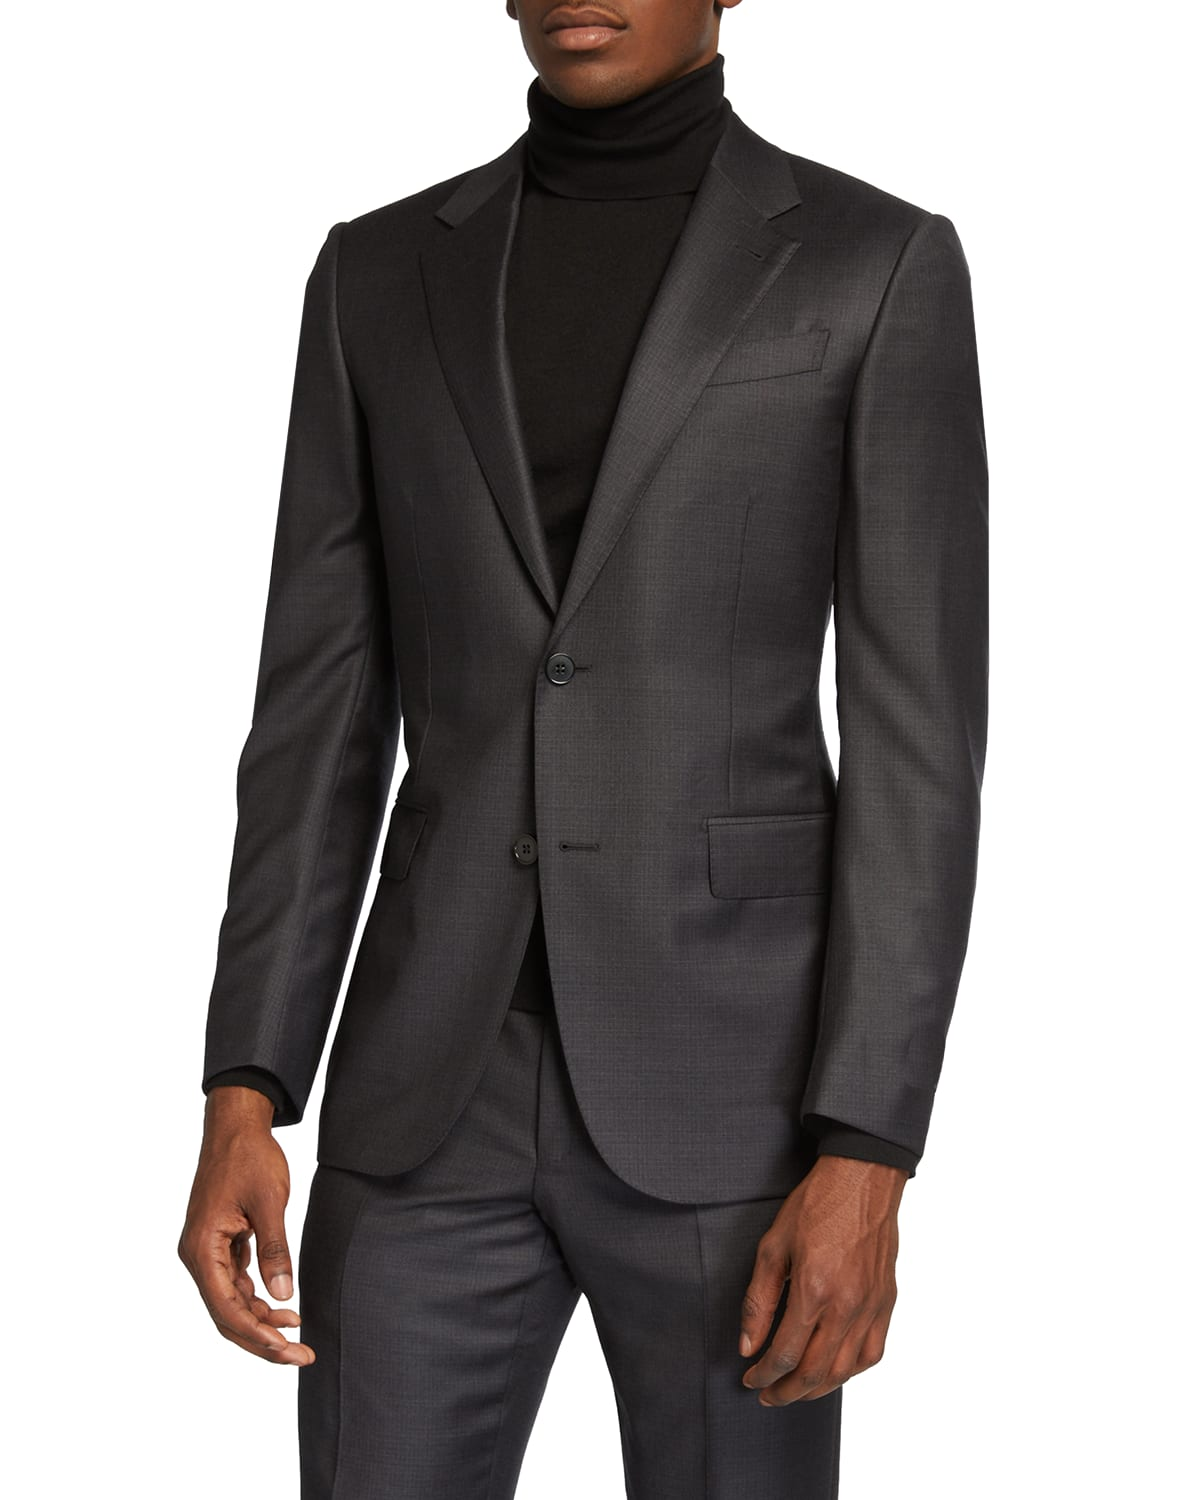 Men's Wool Box-Check Two-Piece Suit